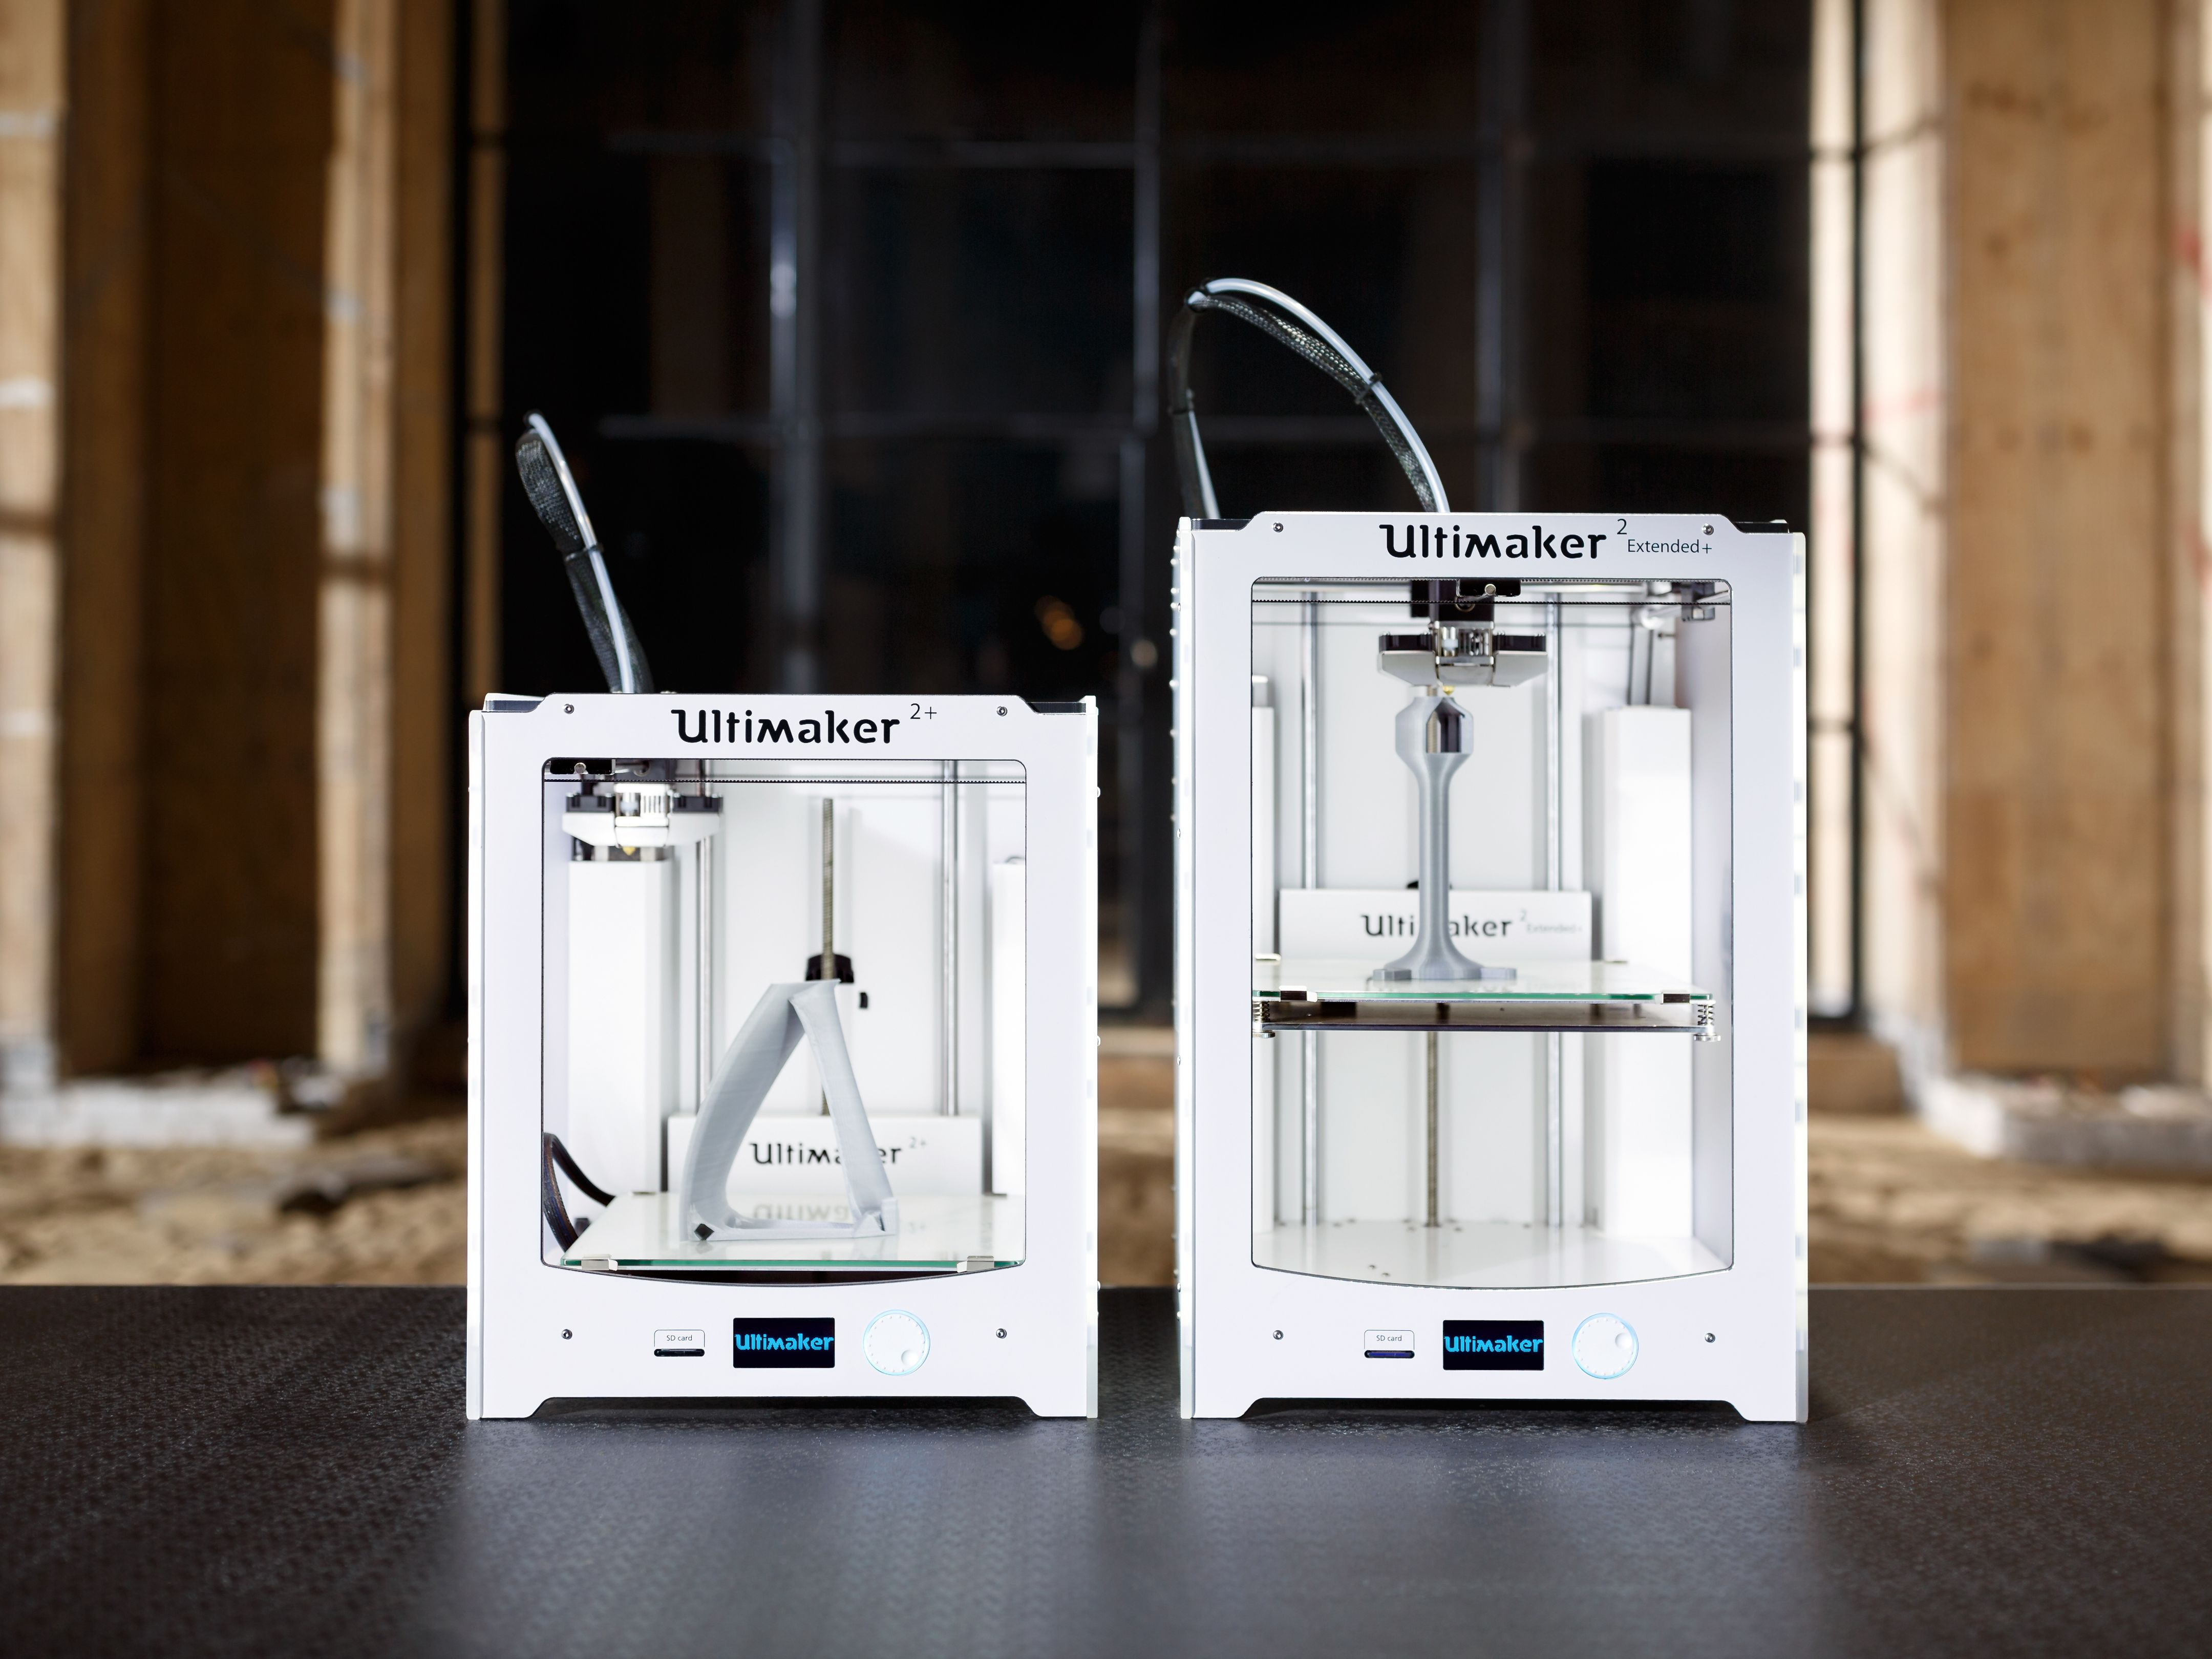 Photo of 2 Ultimaker 3D printers.